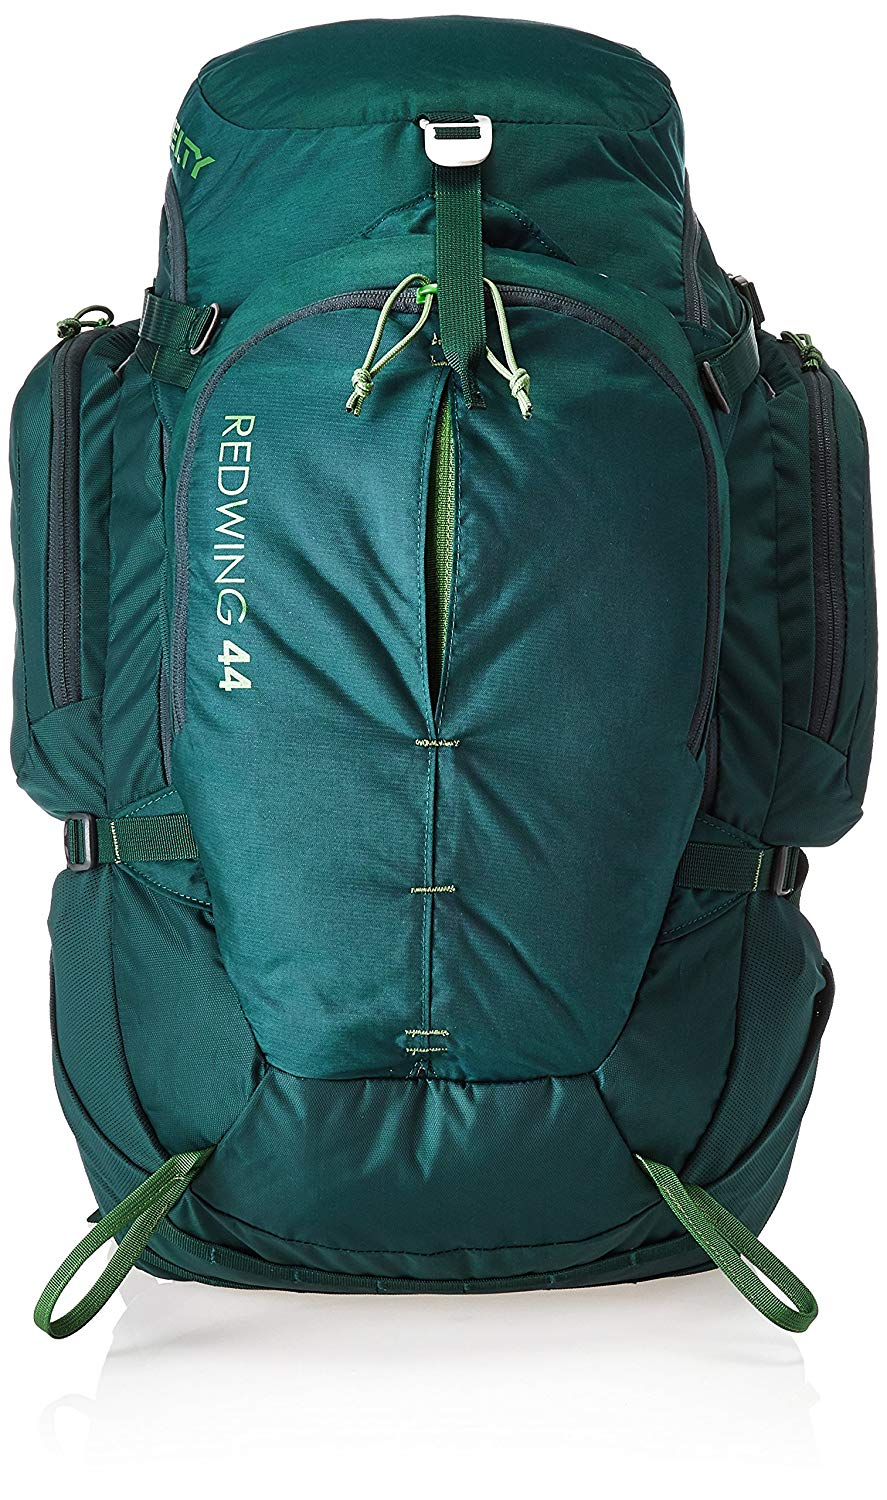 We LOVE these backpacks: Kelty Redwing 44 Backpack